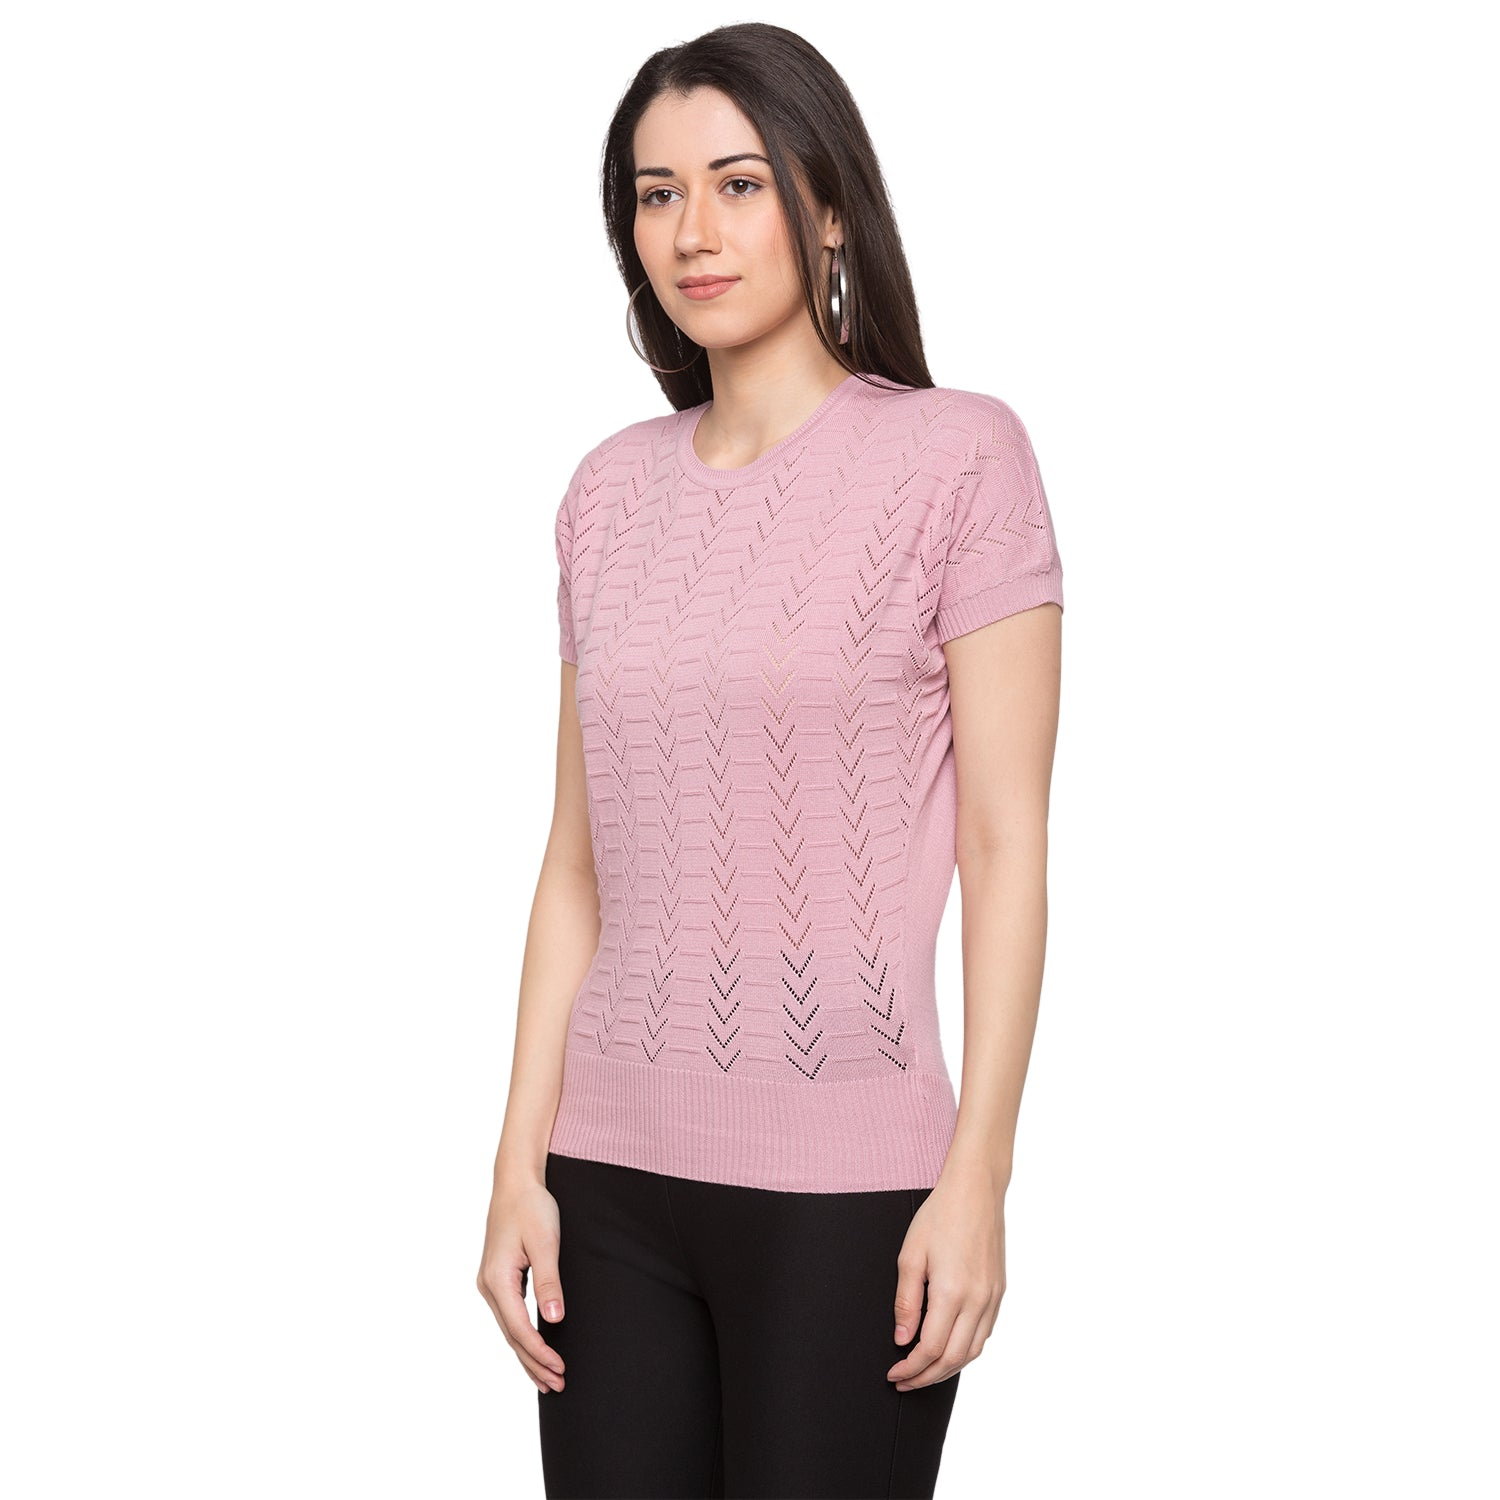 Globus Pink Knitted Top2